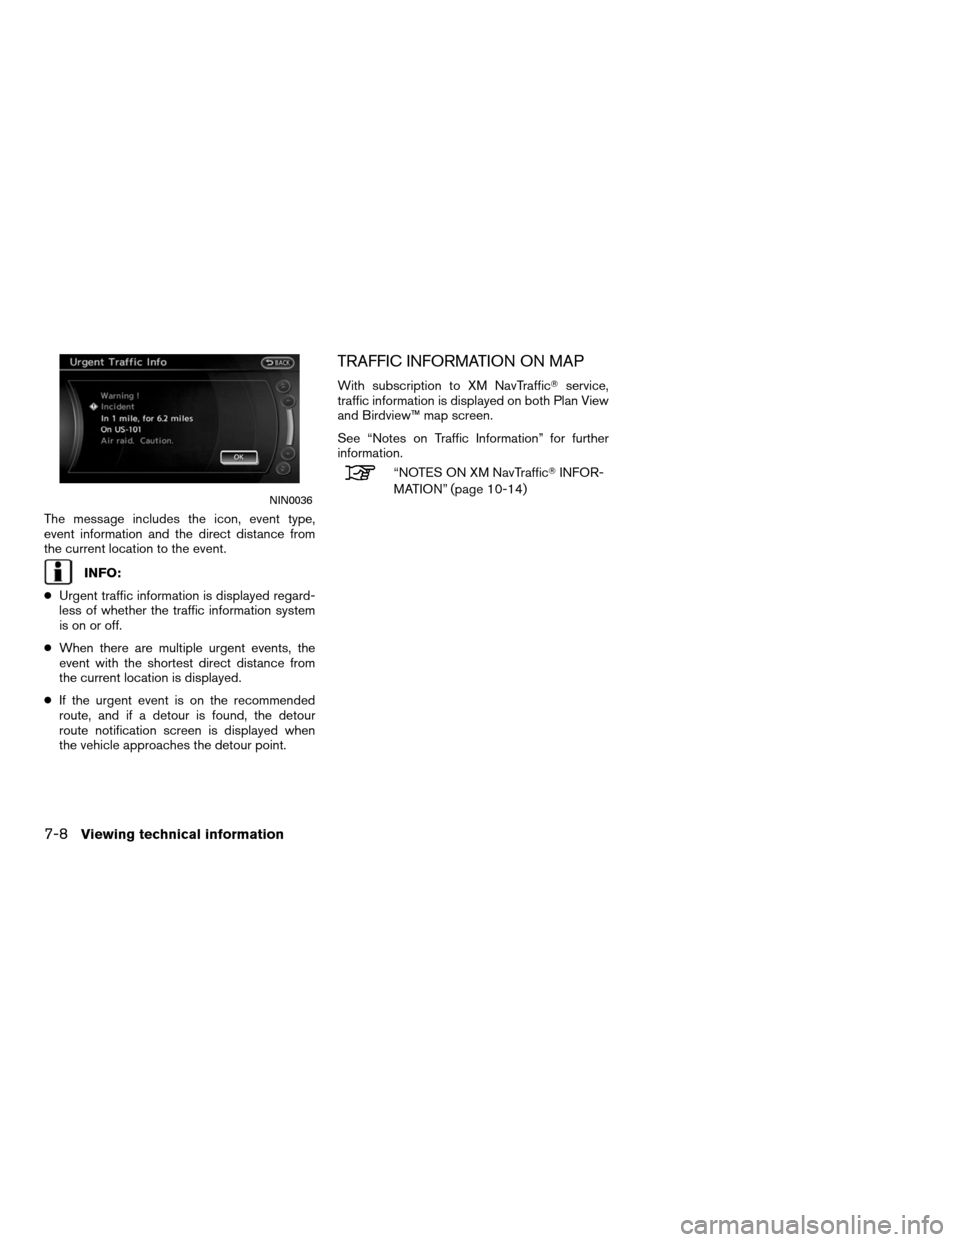 NISSAN ALTIMA COUPE 2011 D32 / 4.G Navigation Manual, Page 196